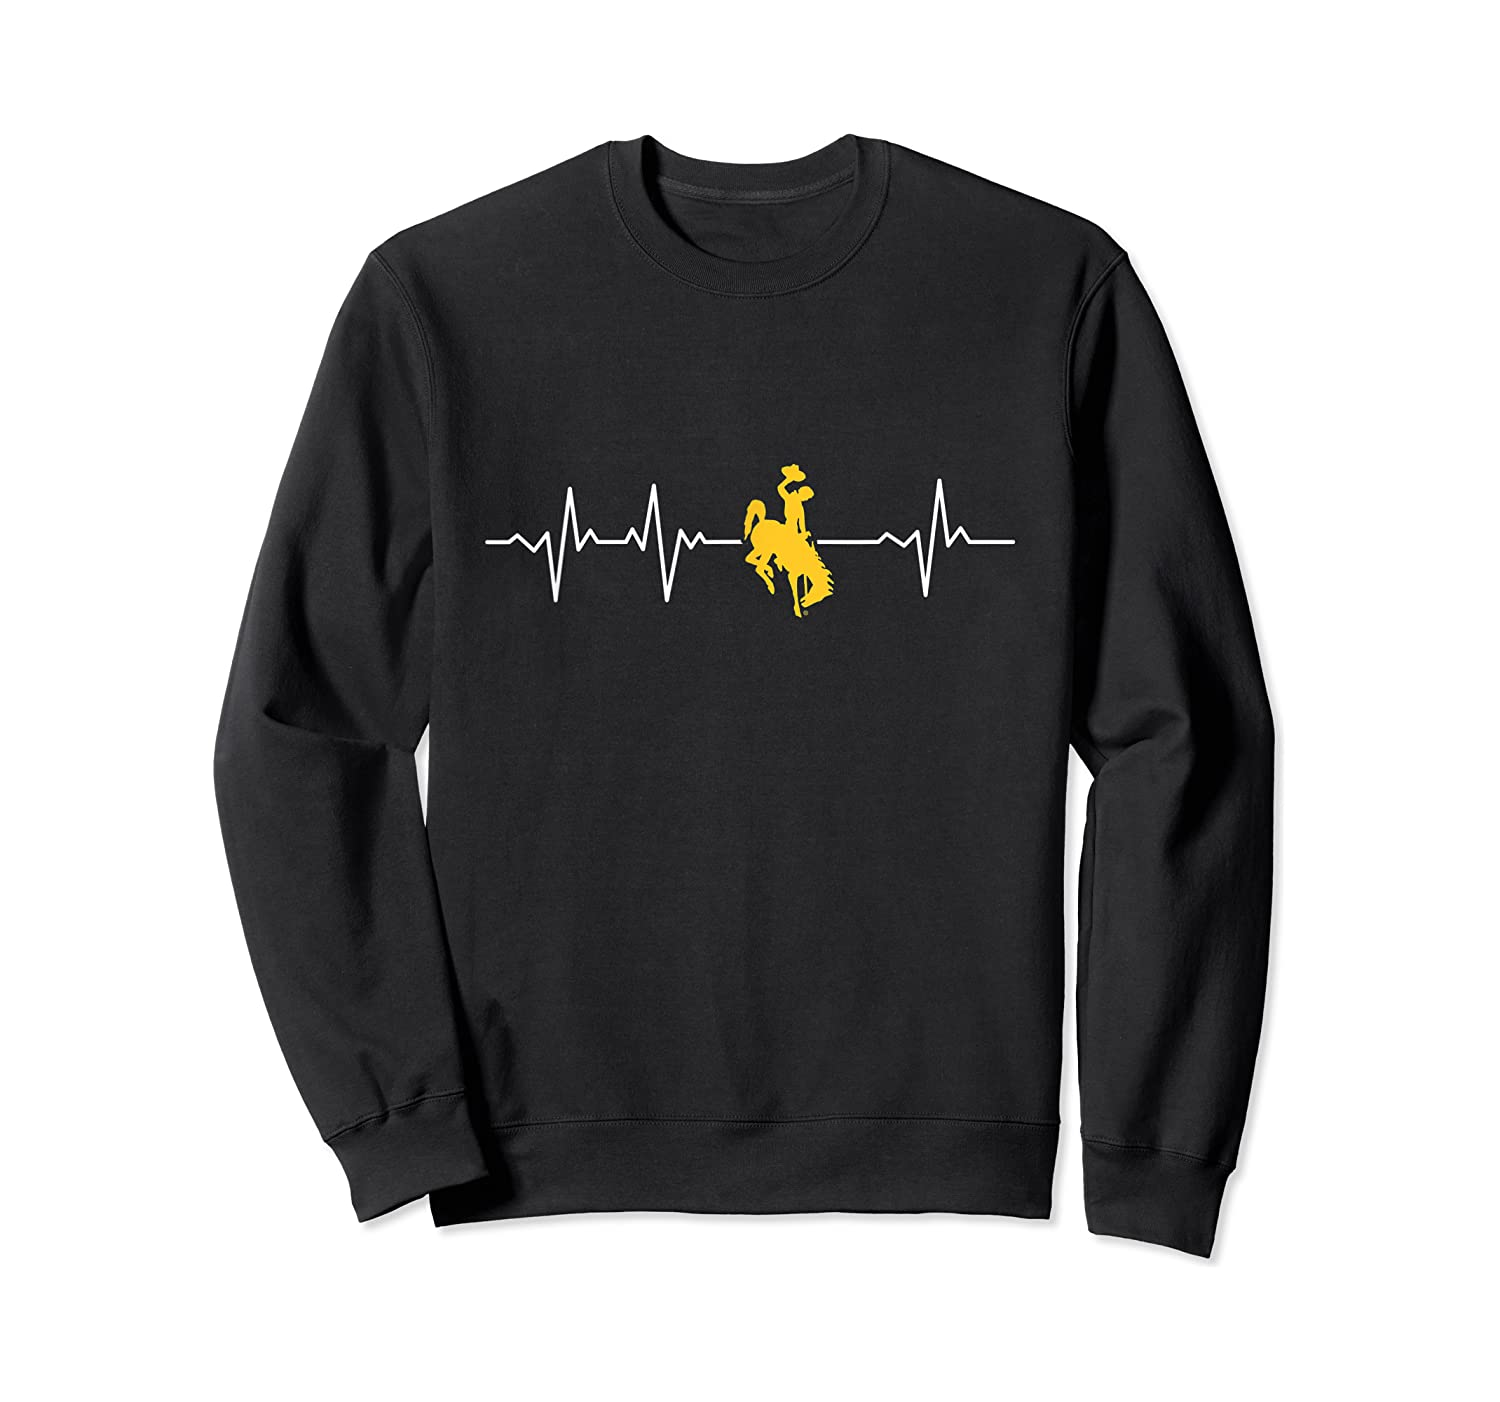 Wing Cow 051 Heartbeat T-shirt - Apparel Crewneck Sweater